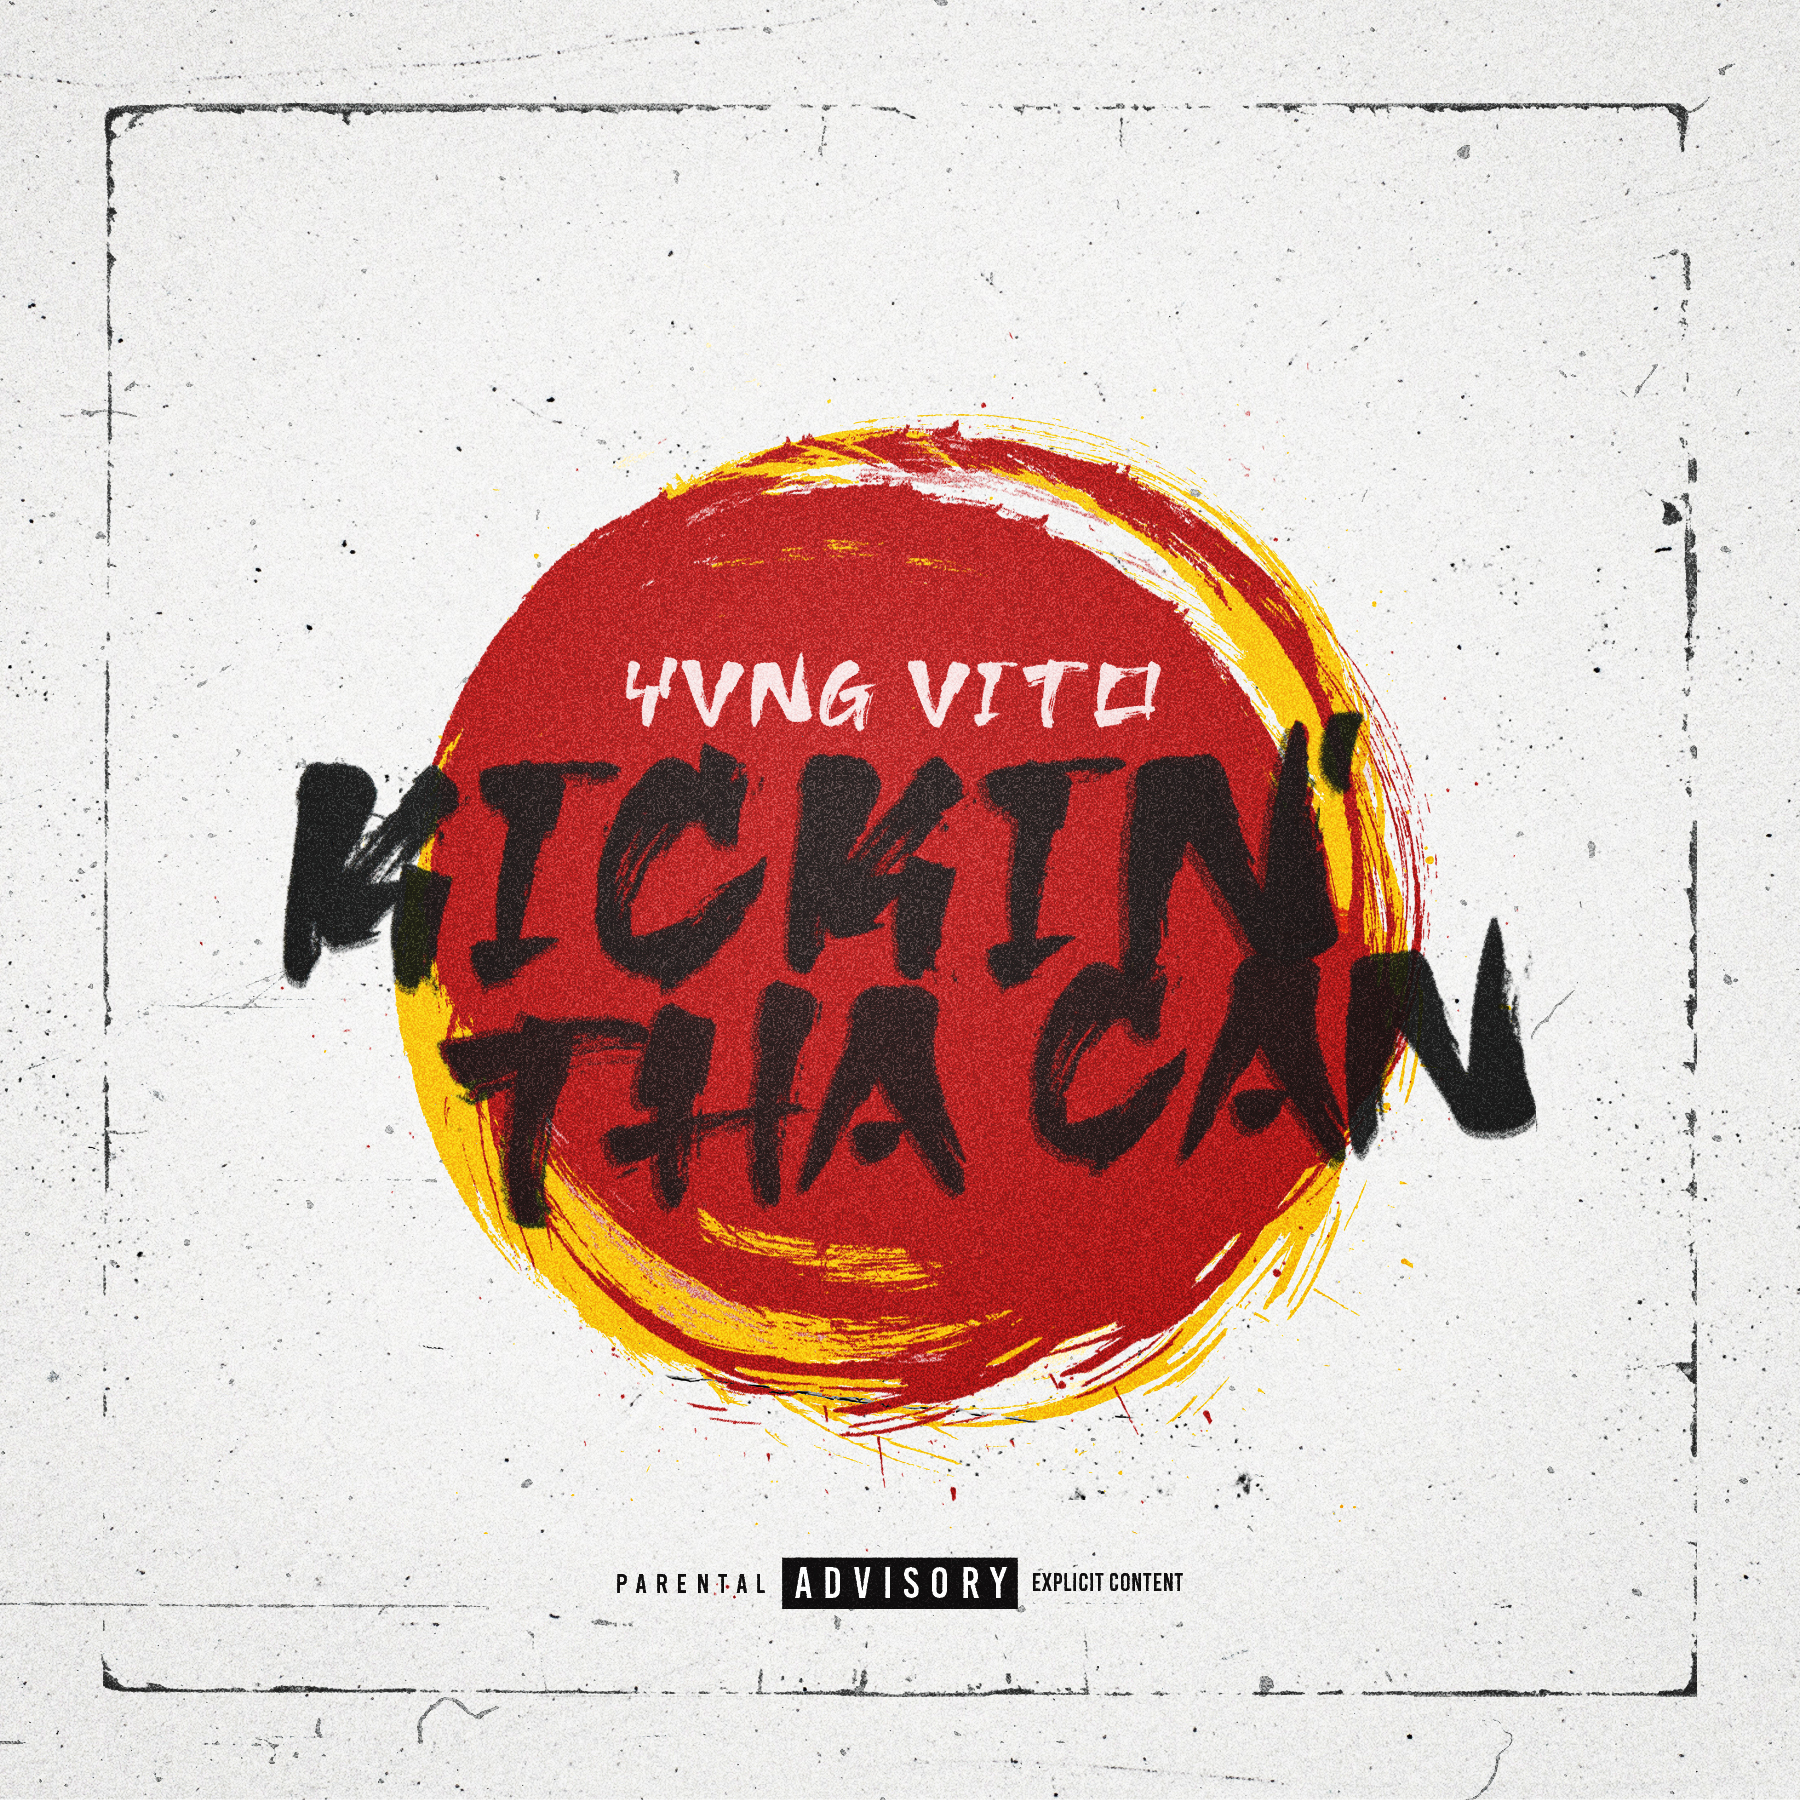 Yvng Vito - Kickin' Tha Can (Single)